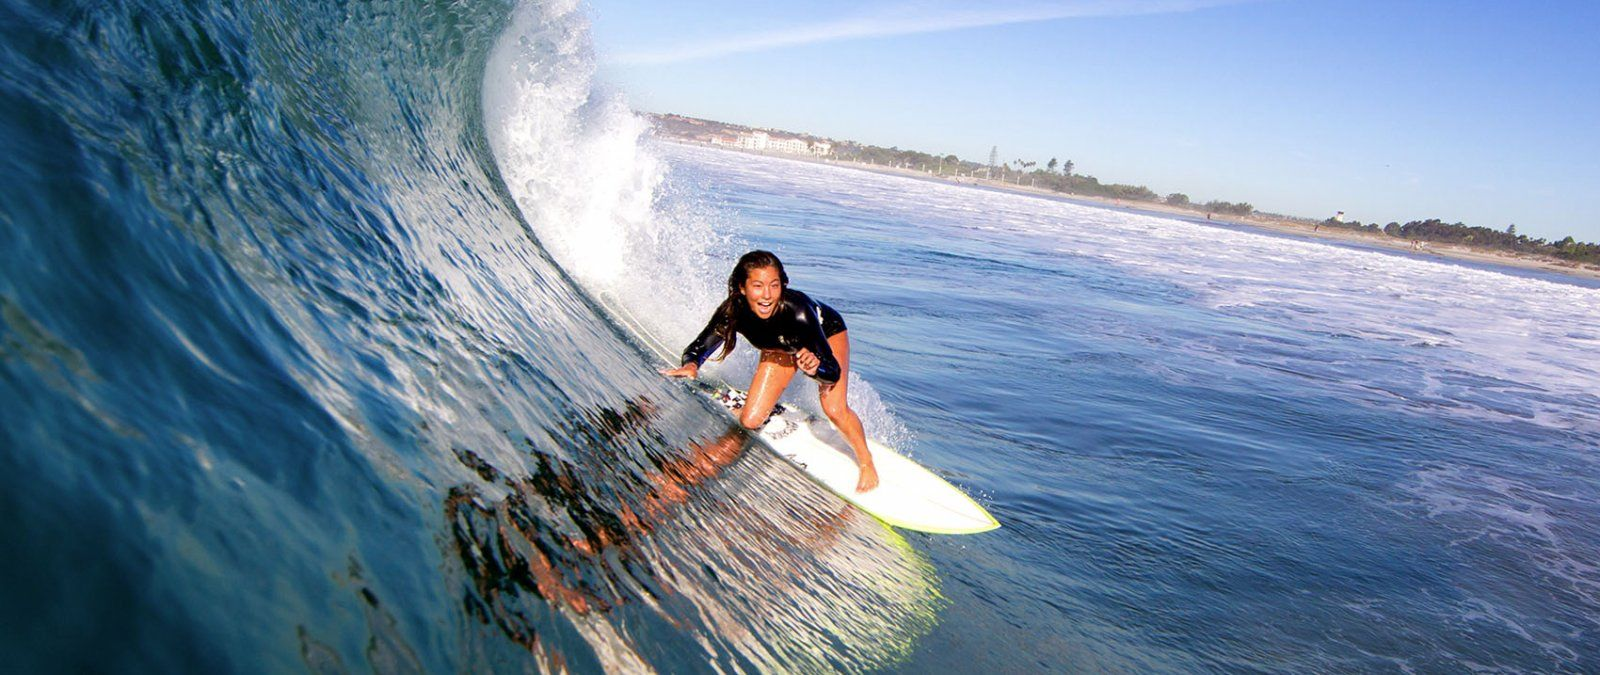 A PLNU female student surfs on a curling wave in San Diego